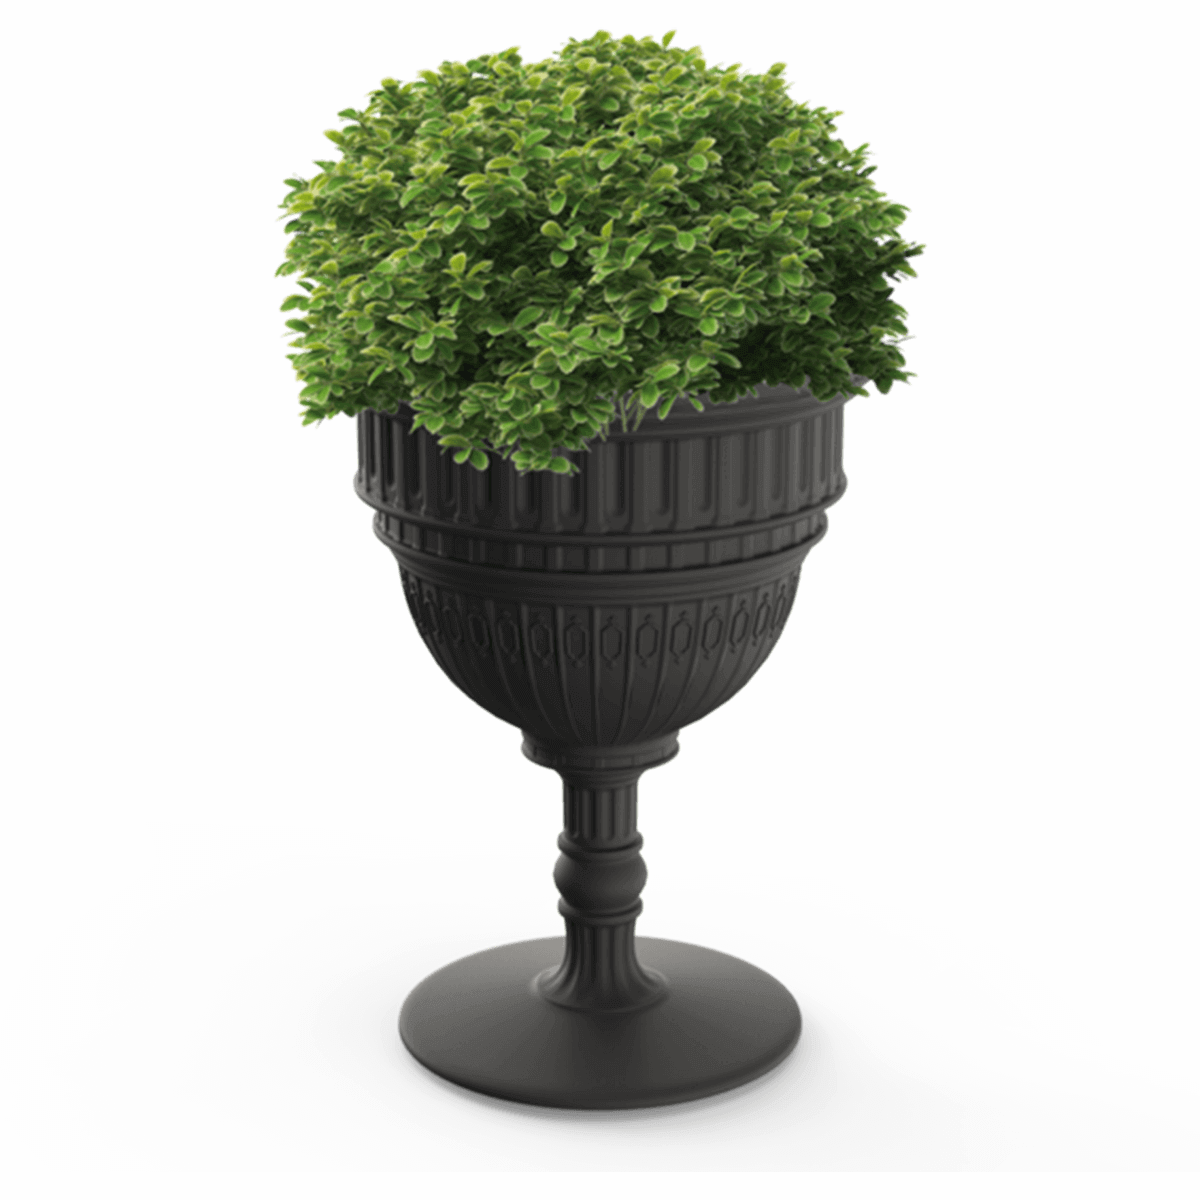 qeeboo  Capitol Planter And Champagne Cooler 花瓶